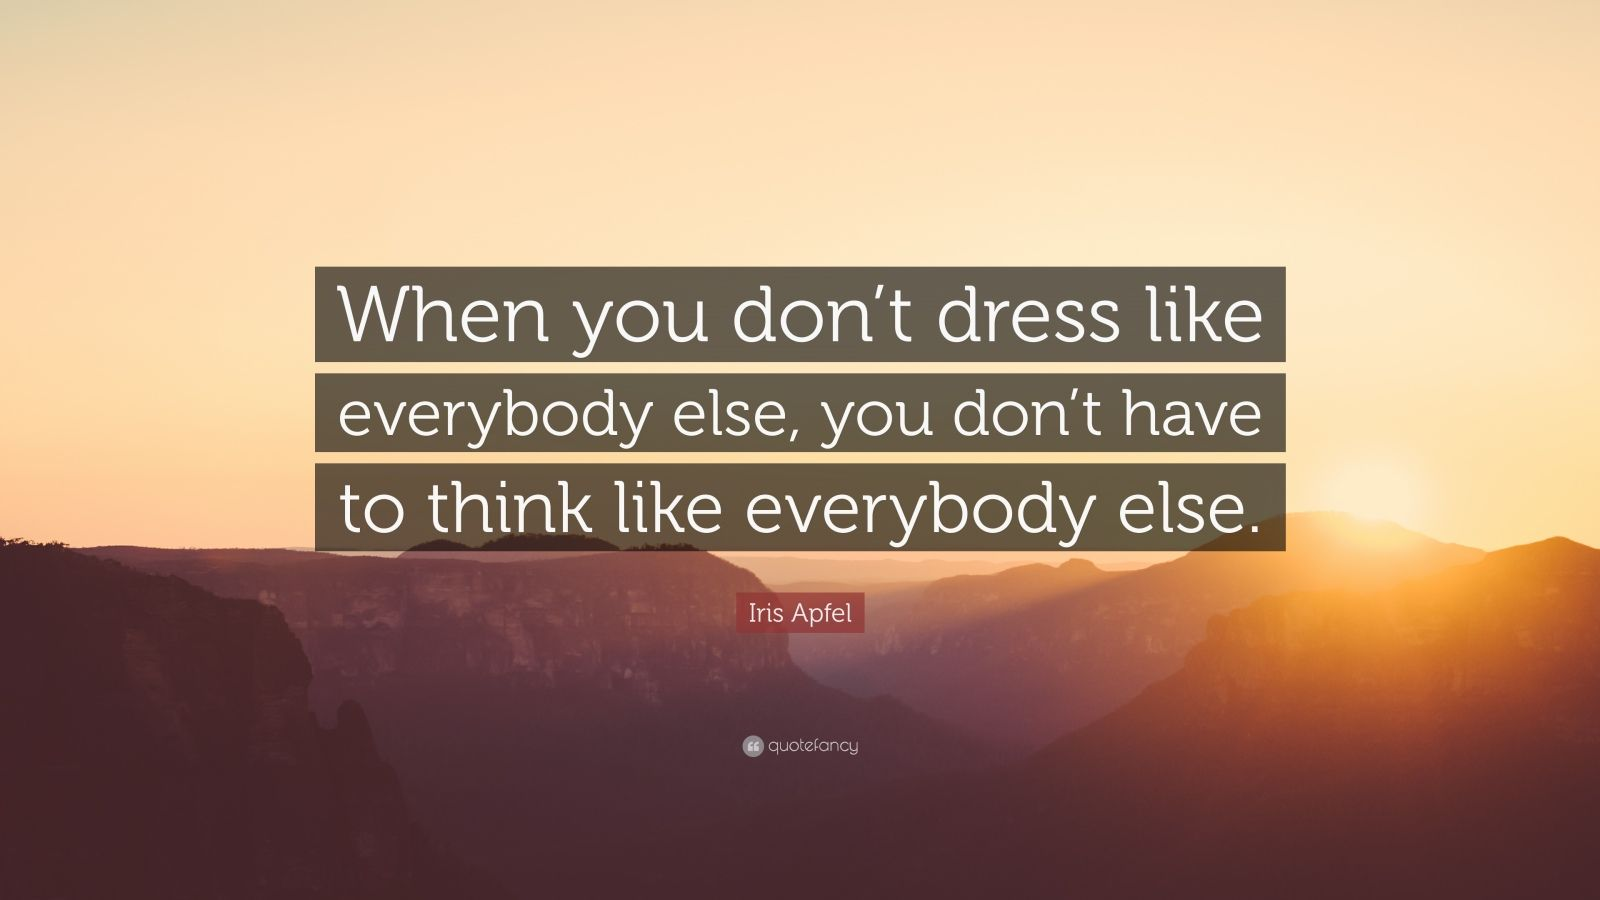 """Iris Apfel Quote: """"When you don't dress like everybody else, you don't have to think like everybody else."""""""